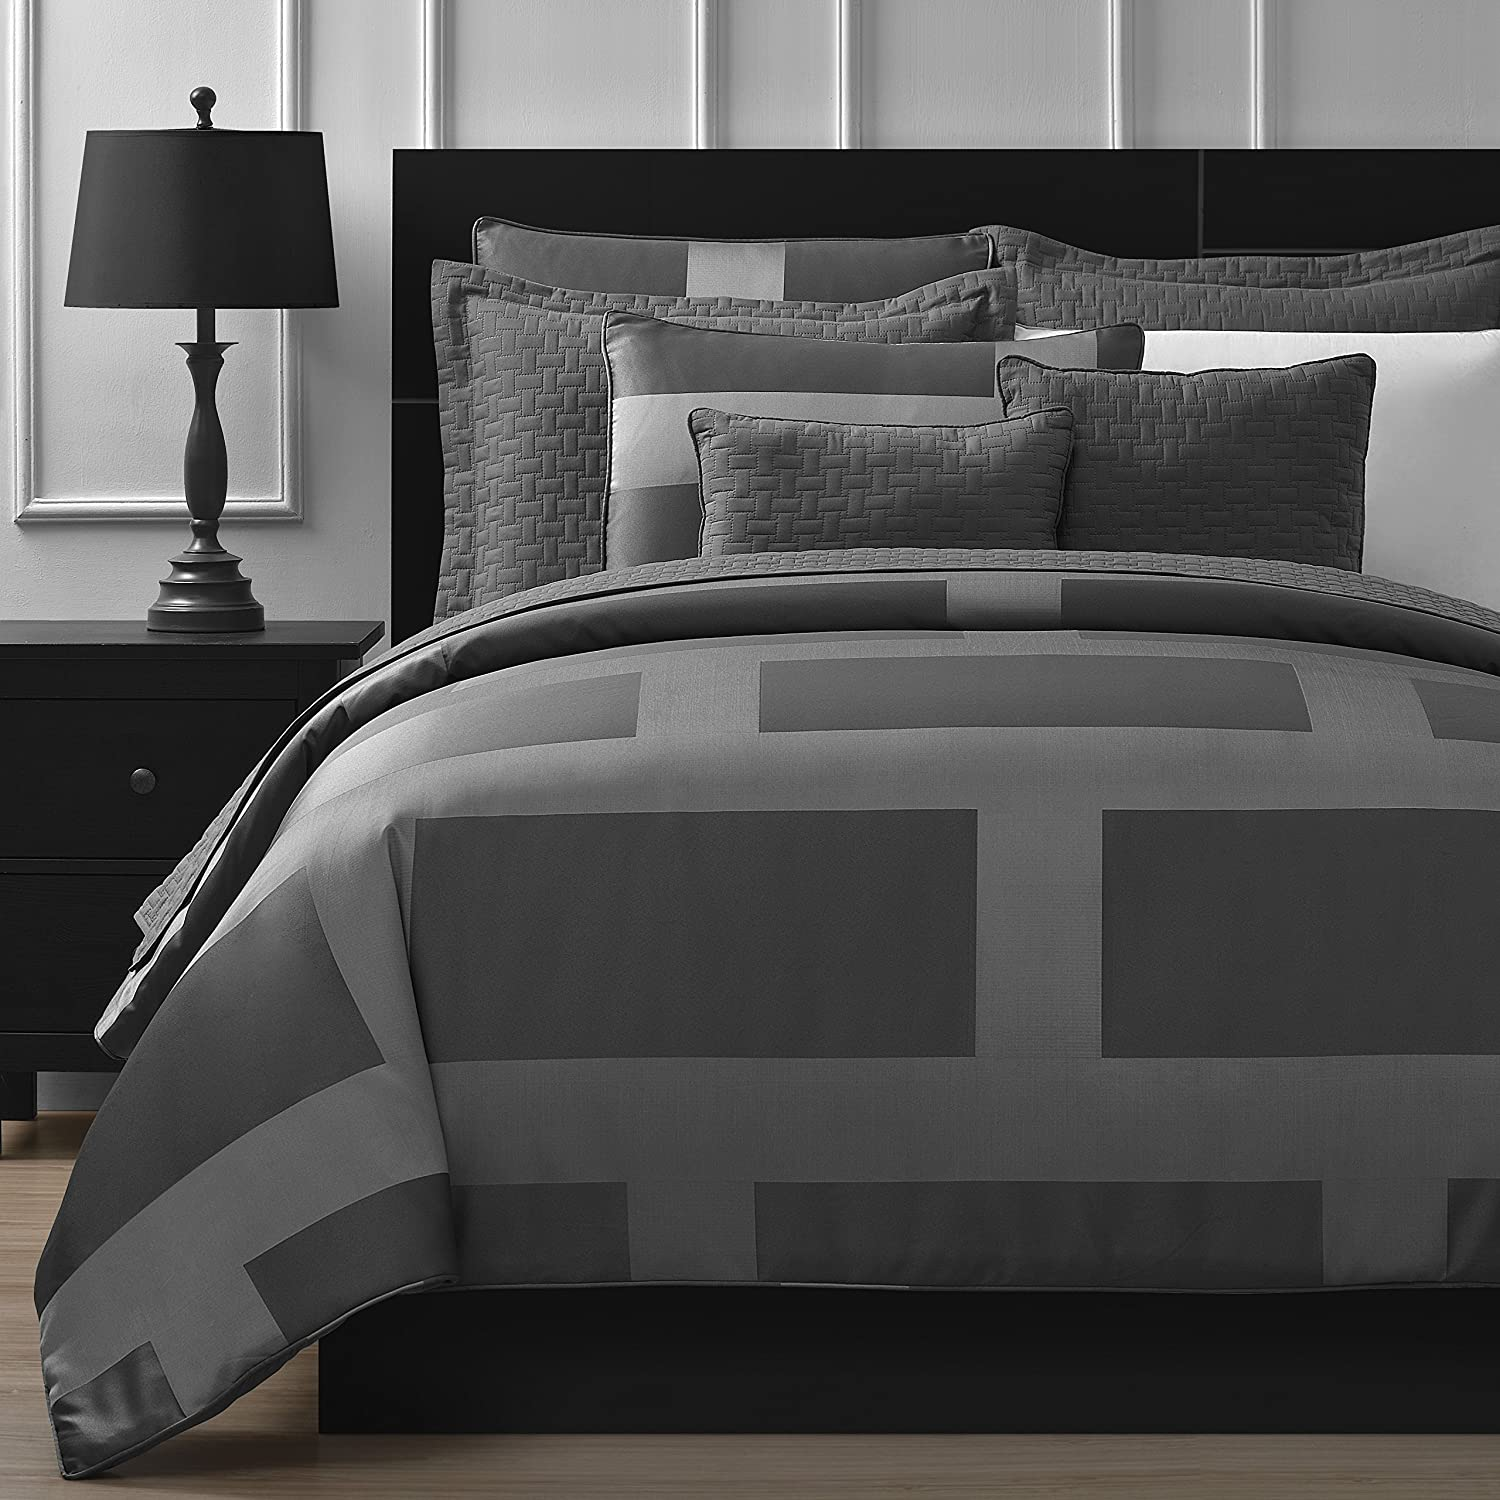 Comfy Bedding Frame Jacquard Microfiber 8-Piece Comforter and Coverlet Set (Queen, Gray